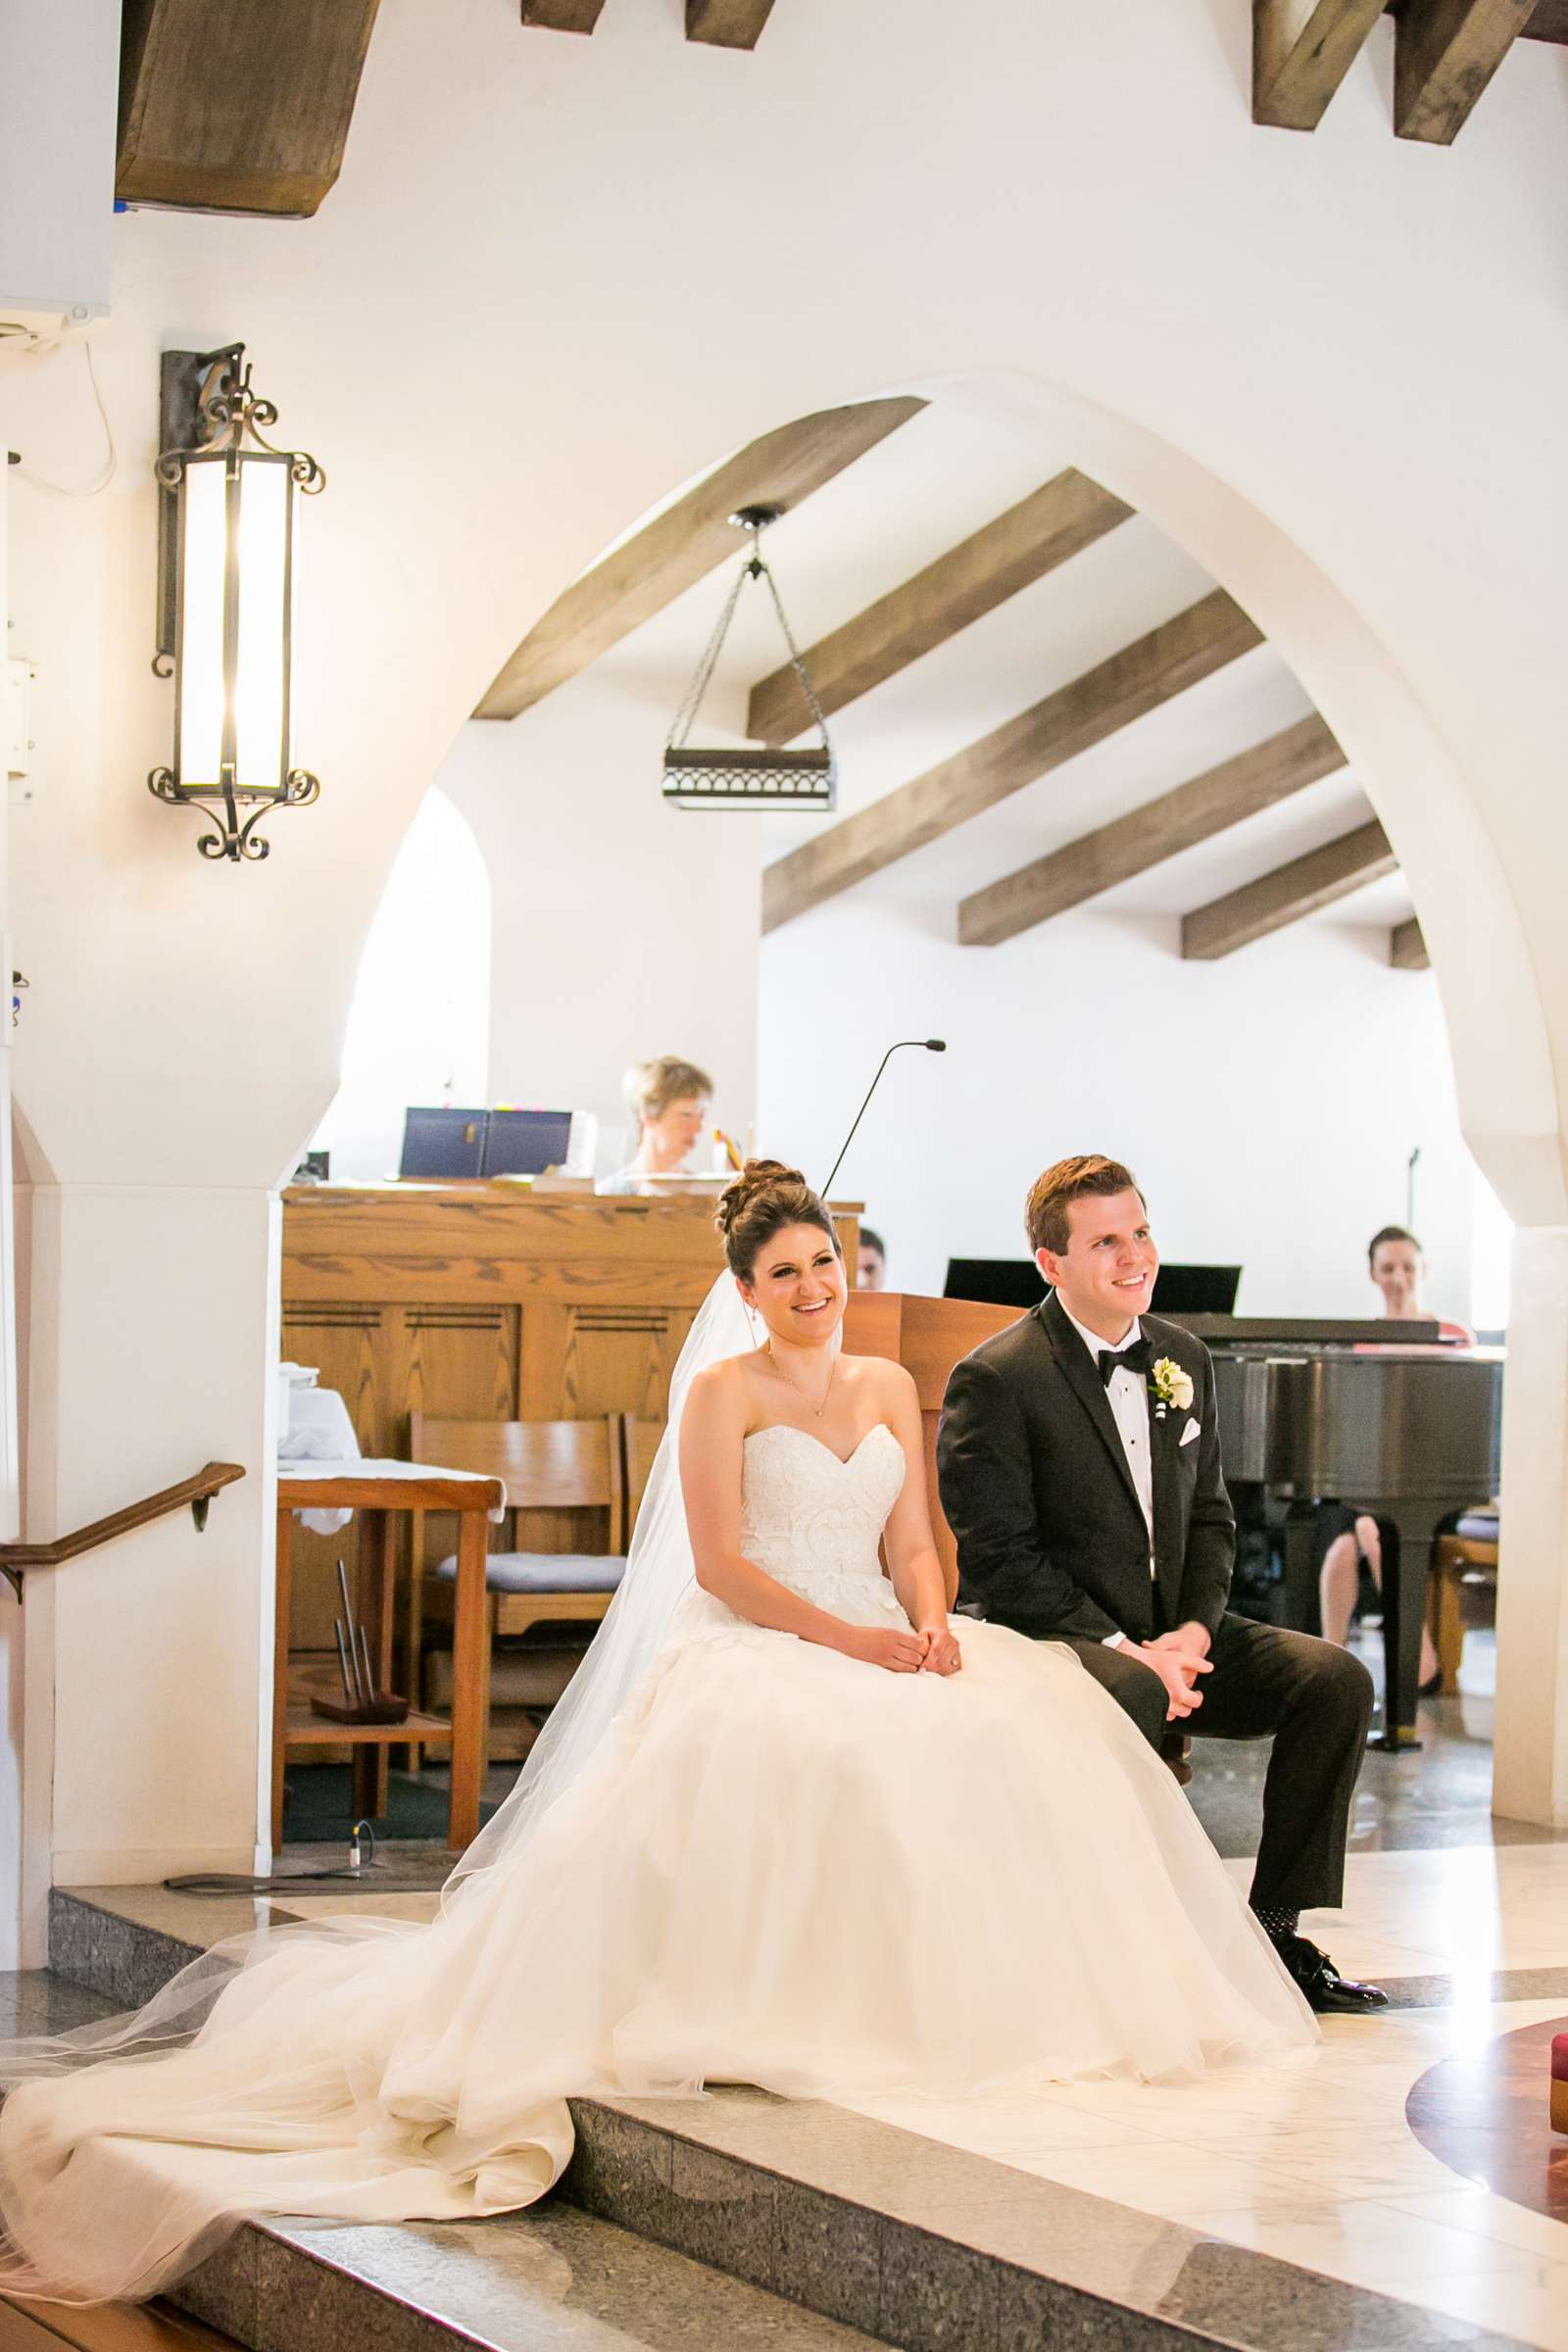 Bahia Hotel Wedding coordinated by I Do Weddings, Meredith and Jack Wedding Photo #31 by True Photography